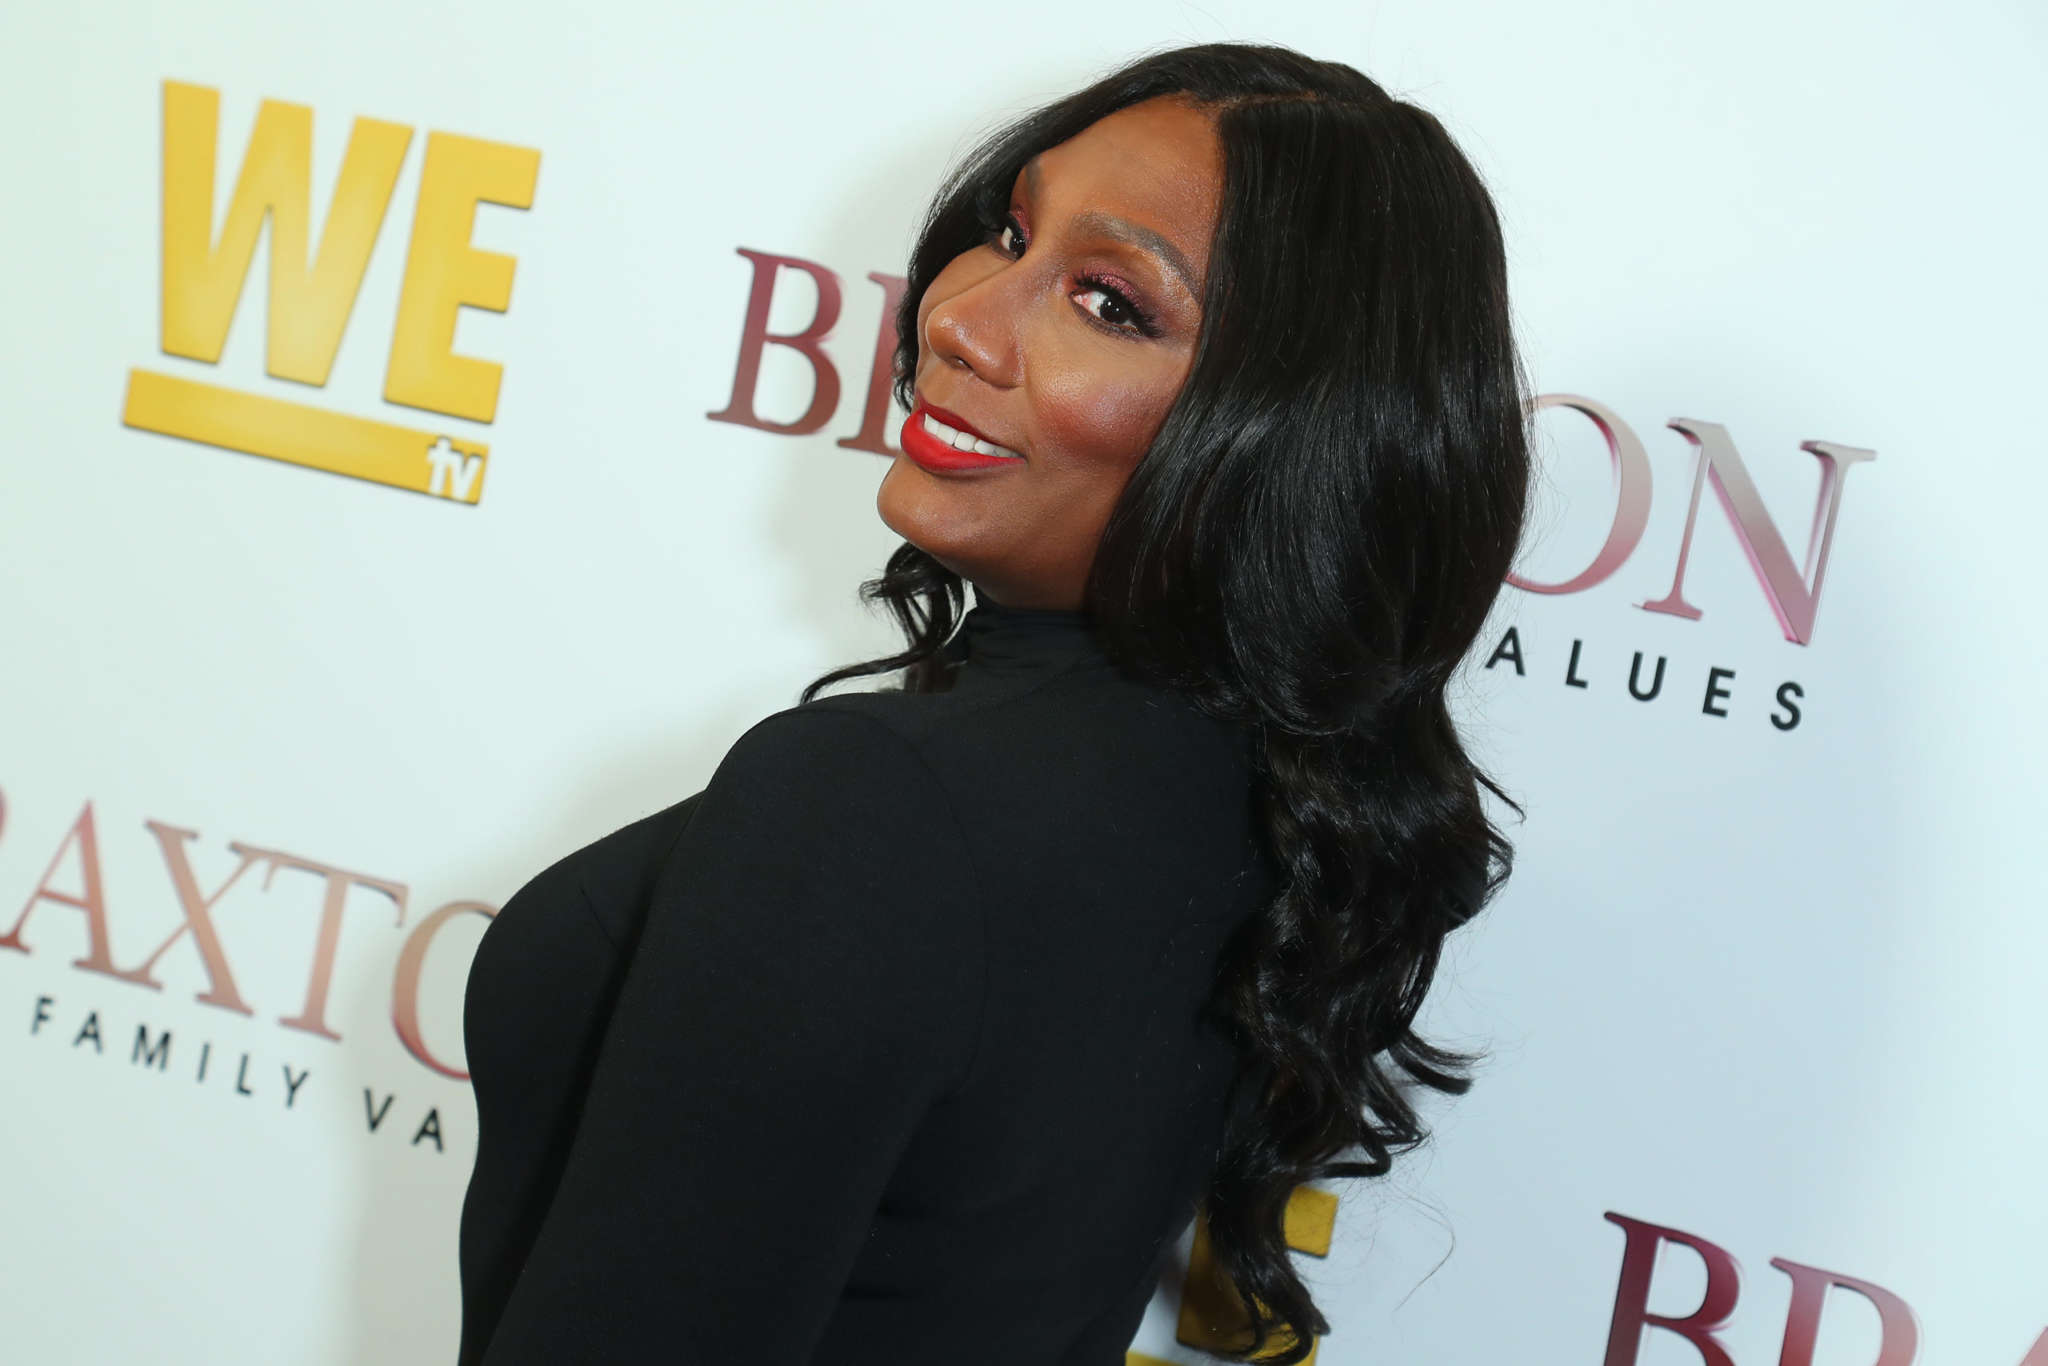 towanda-braxton-receives-backlash-following-this-video